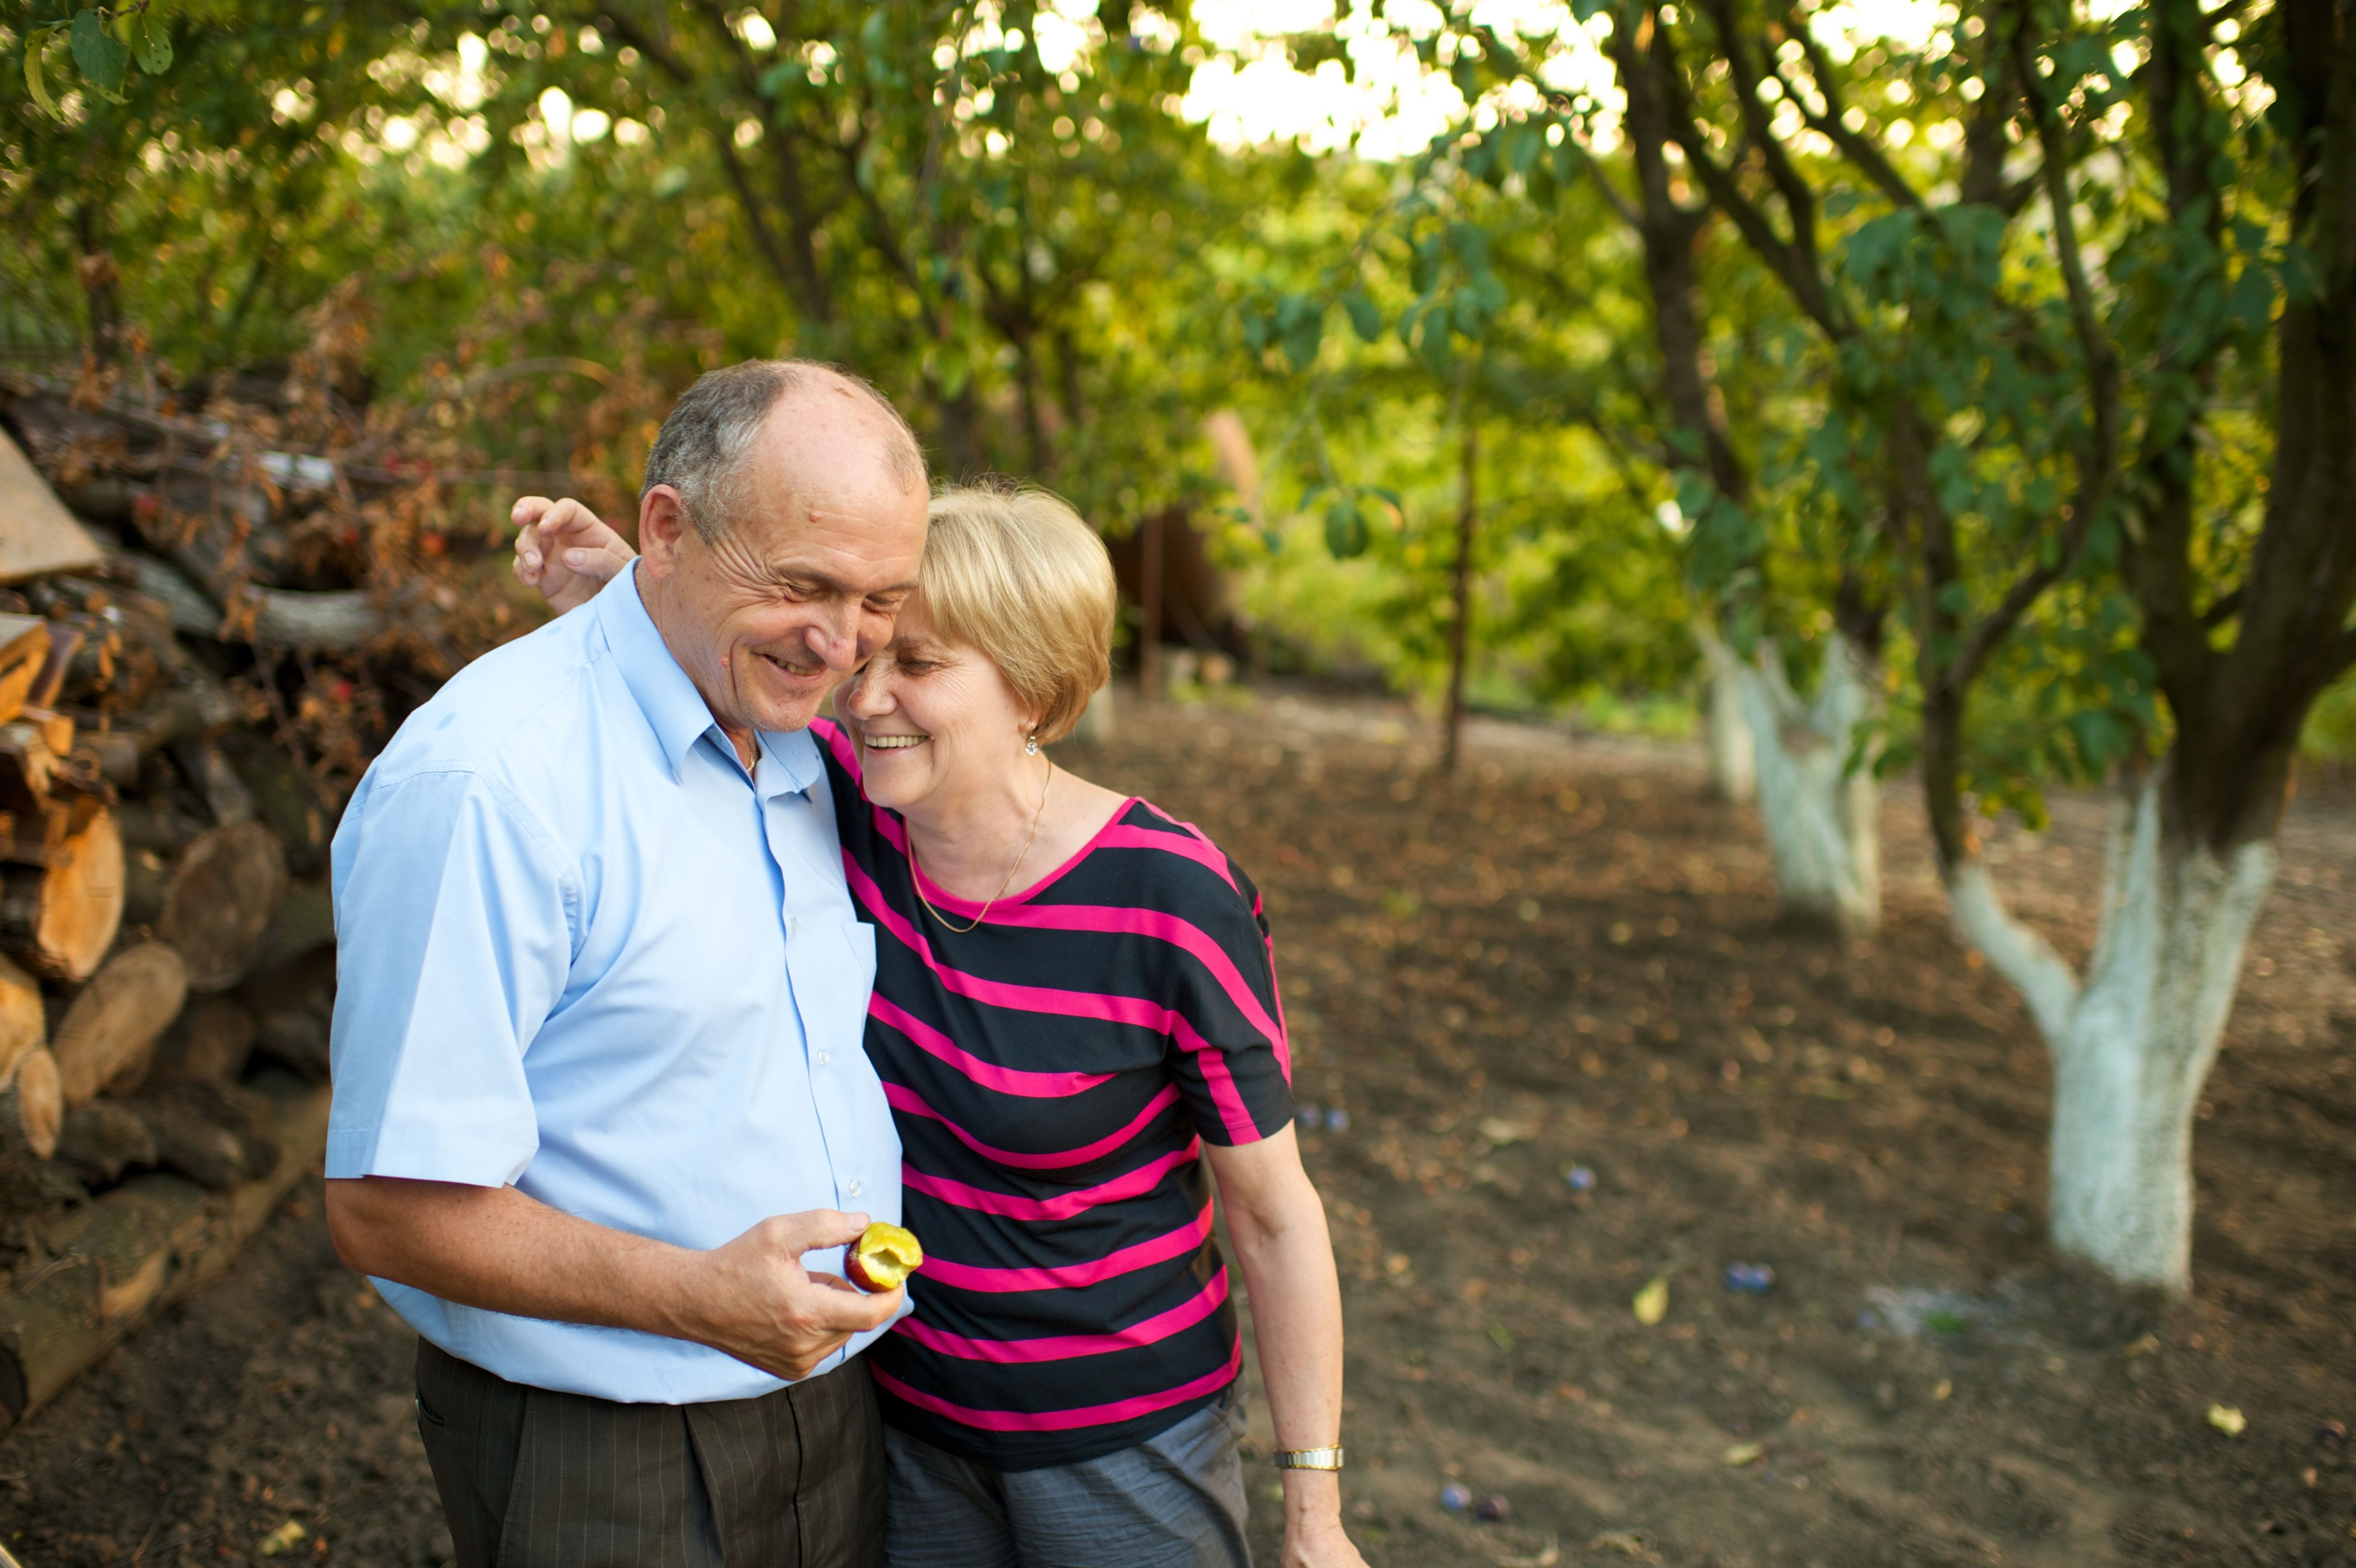 An elderly couple standing in an orchard in Romania.